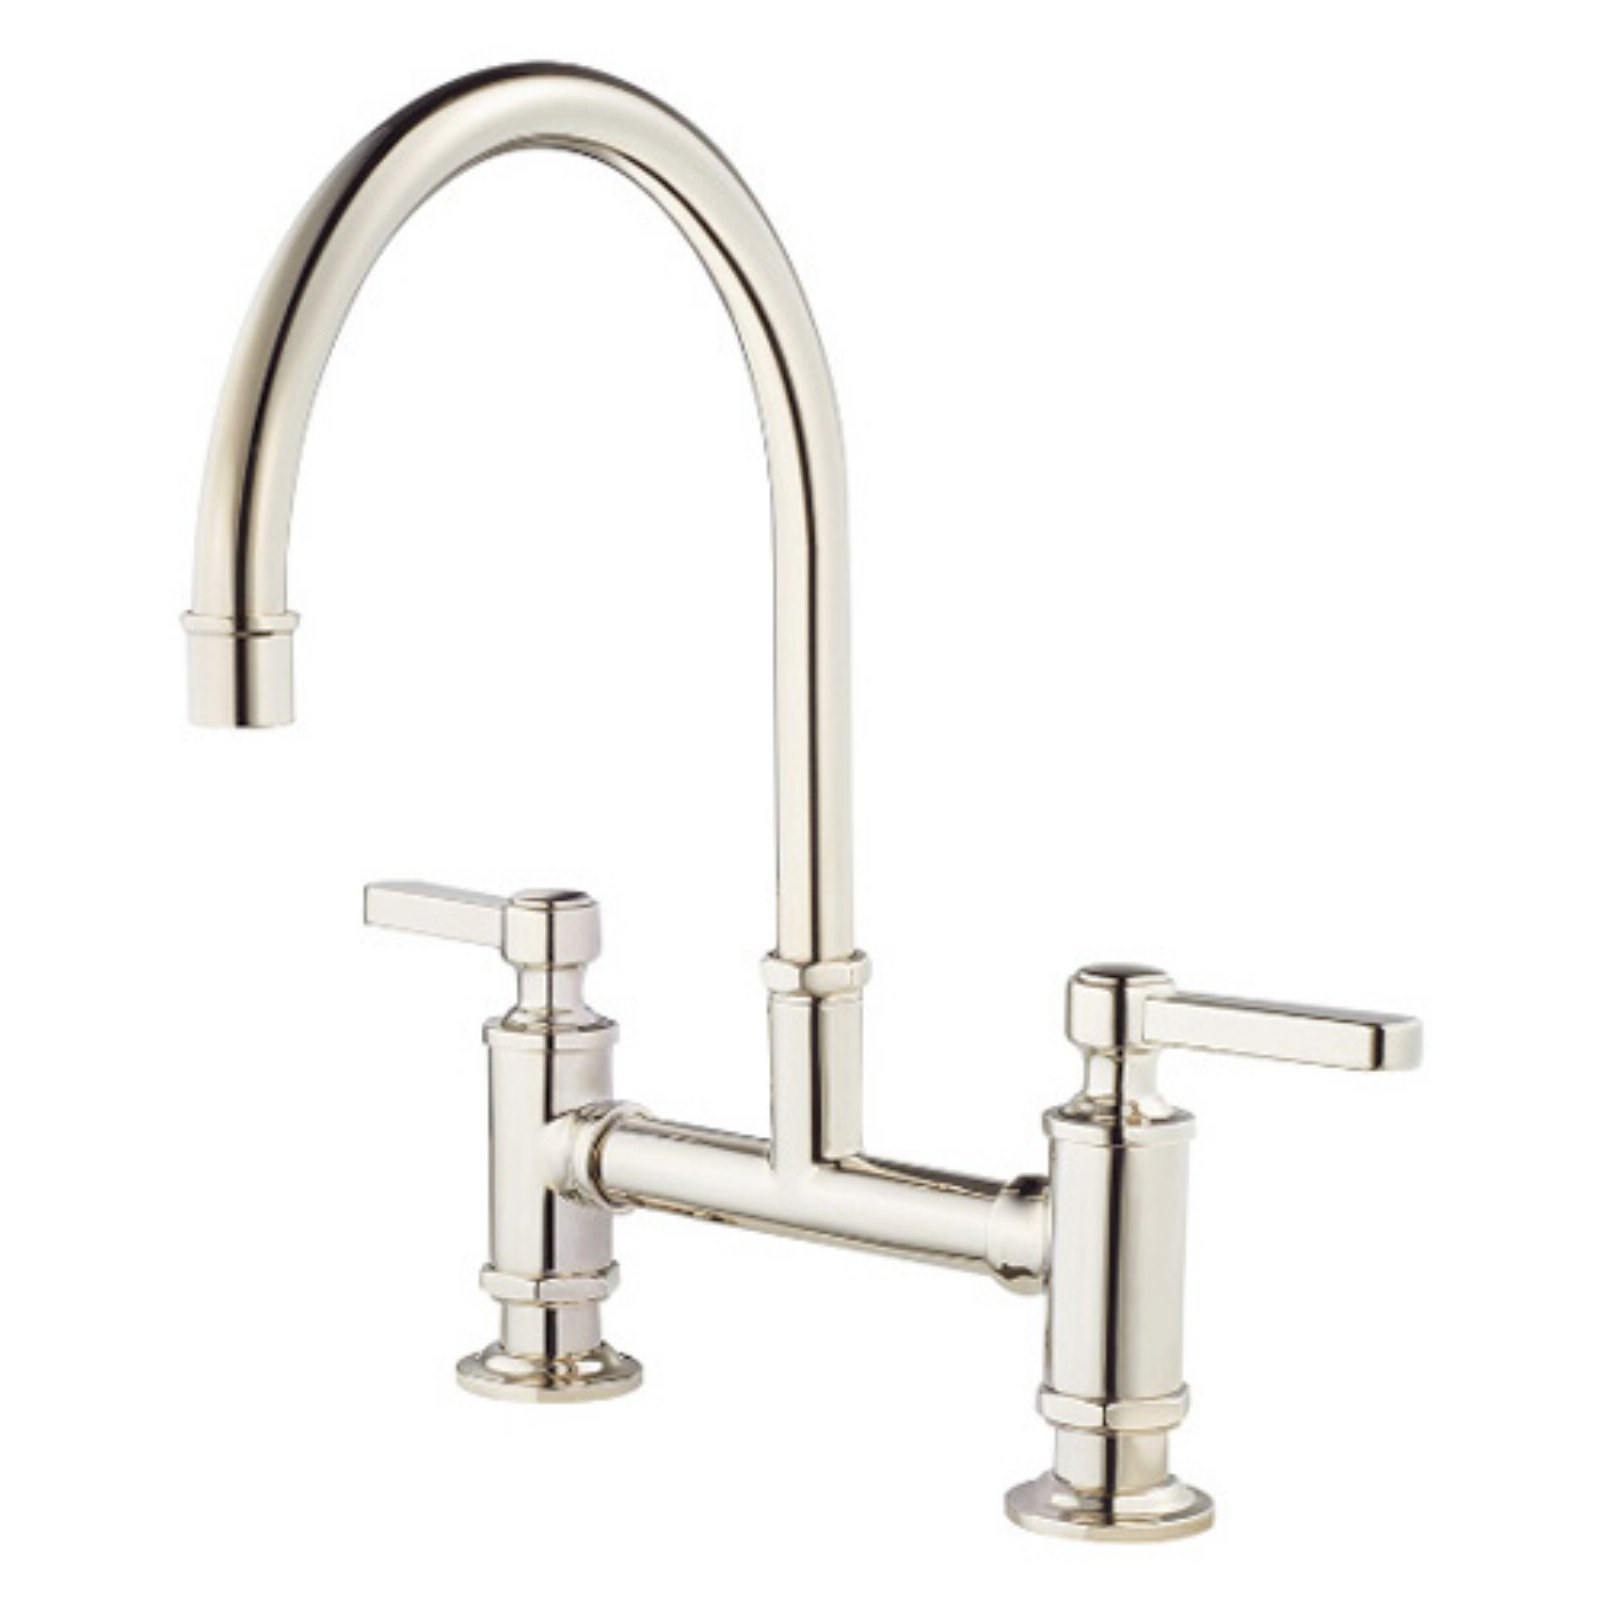 Pfister Port G136-500S Double Handle Kitchen Faucet by